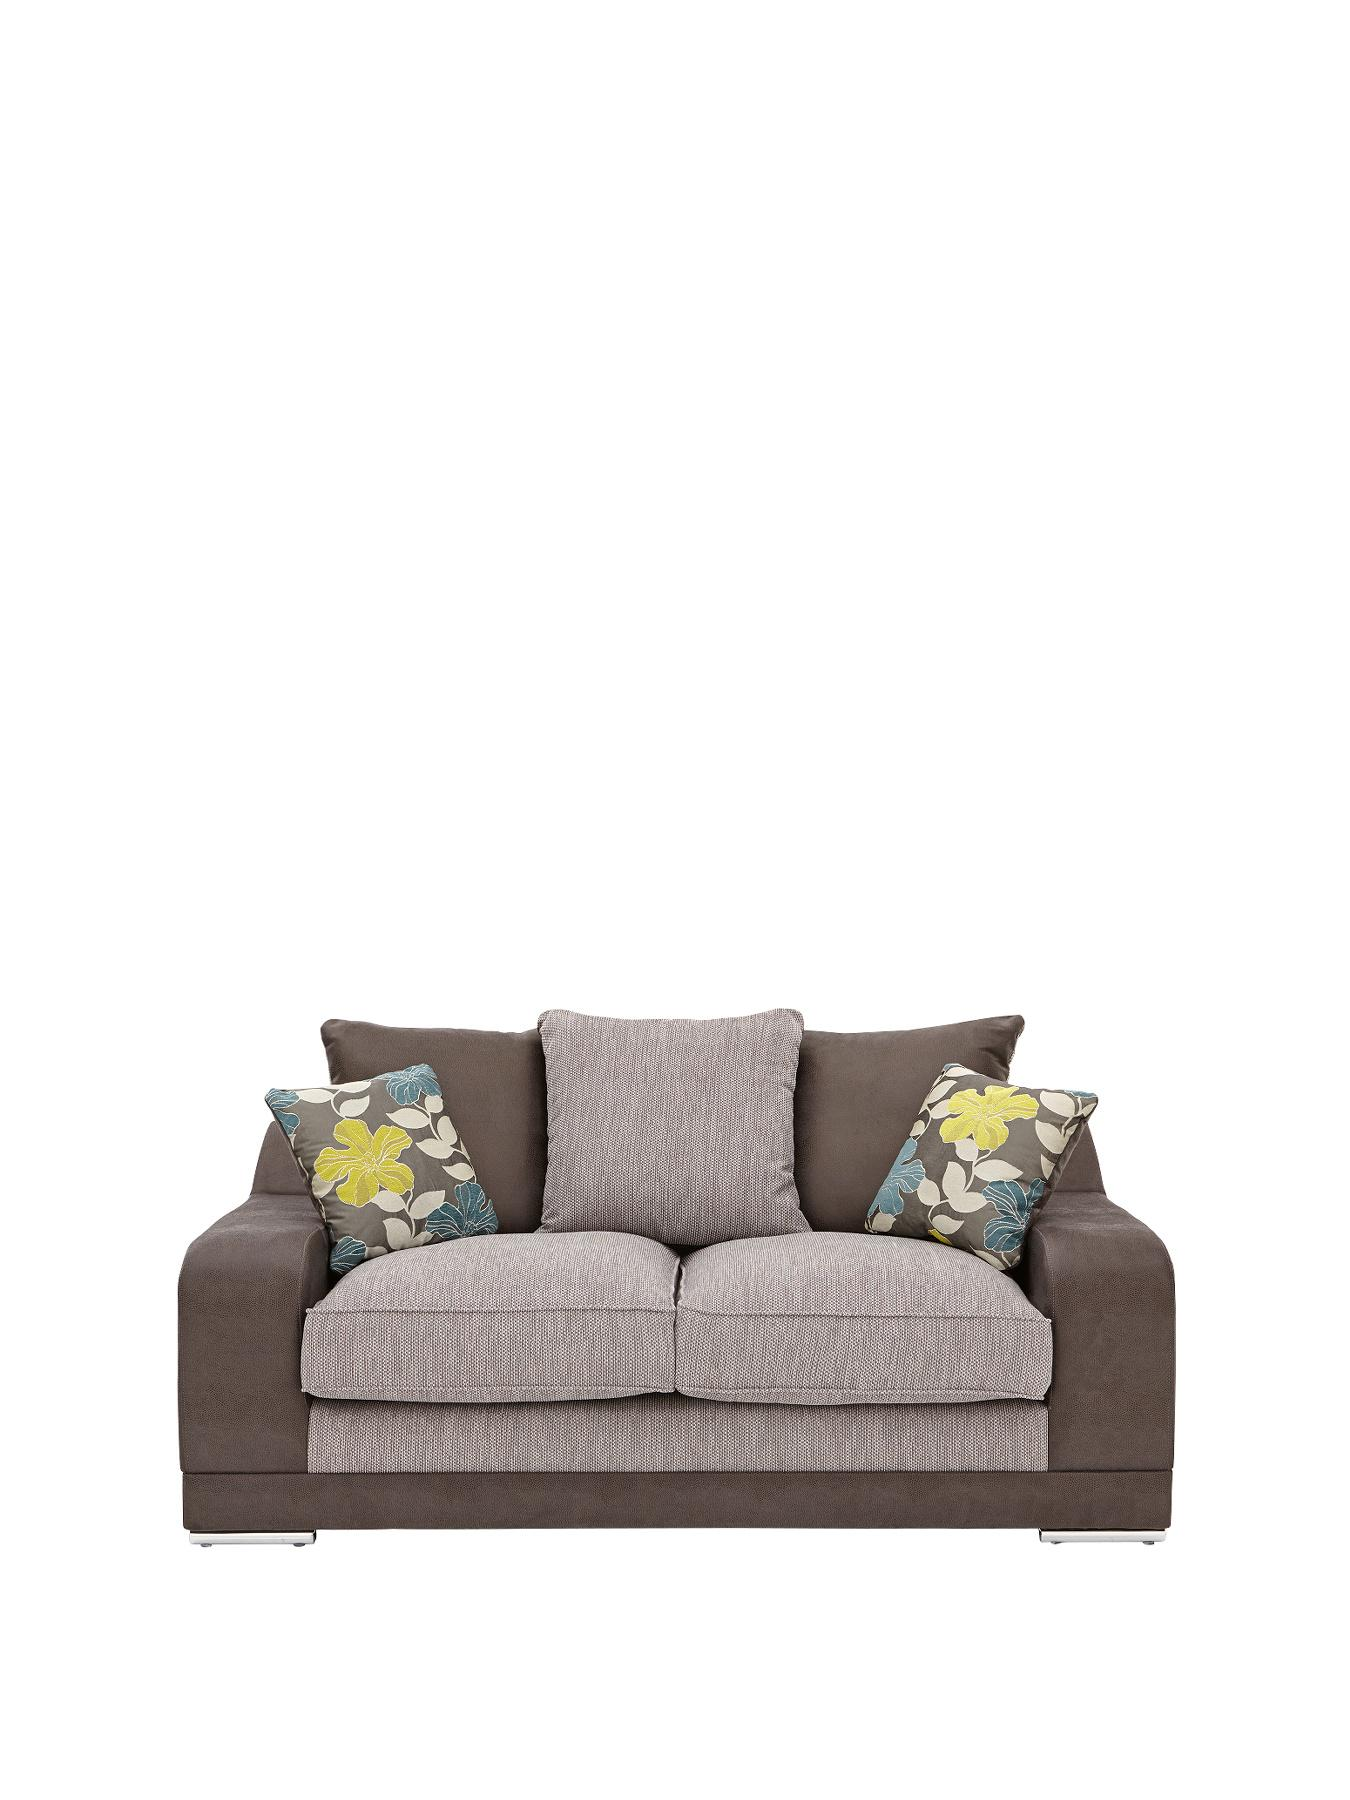 cheap 2 seater sofa covers click clack bed perth very from littlewoods ravenna grey